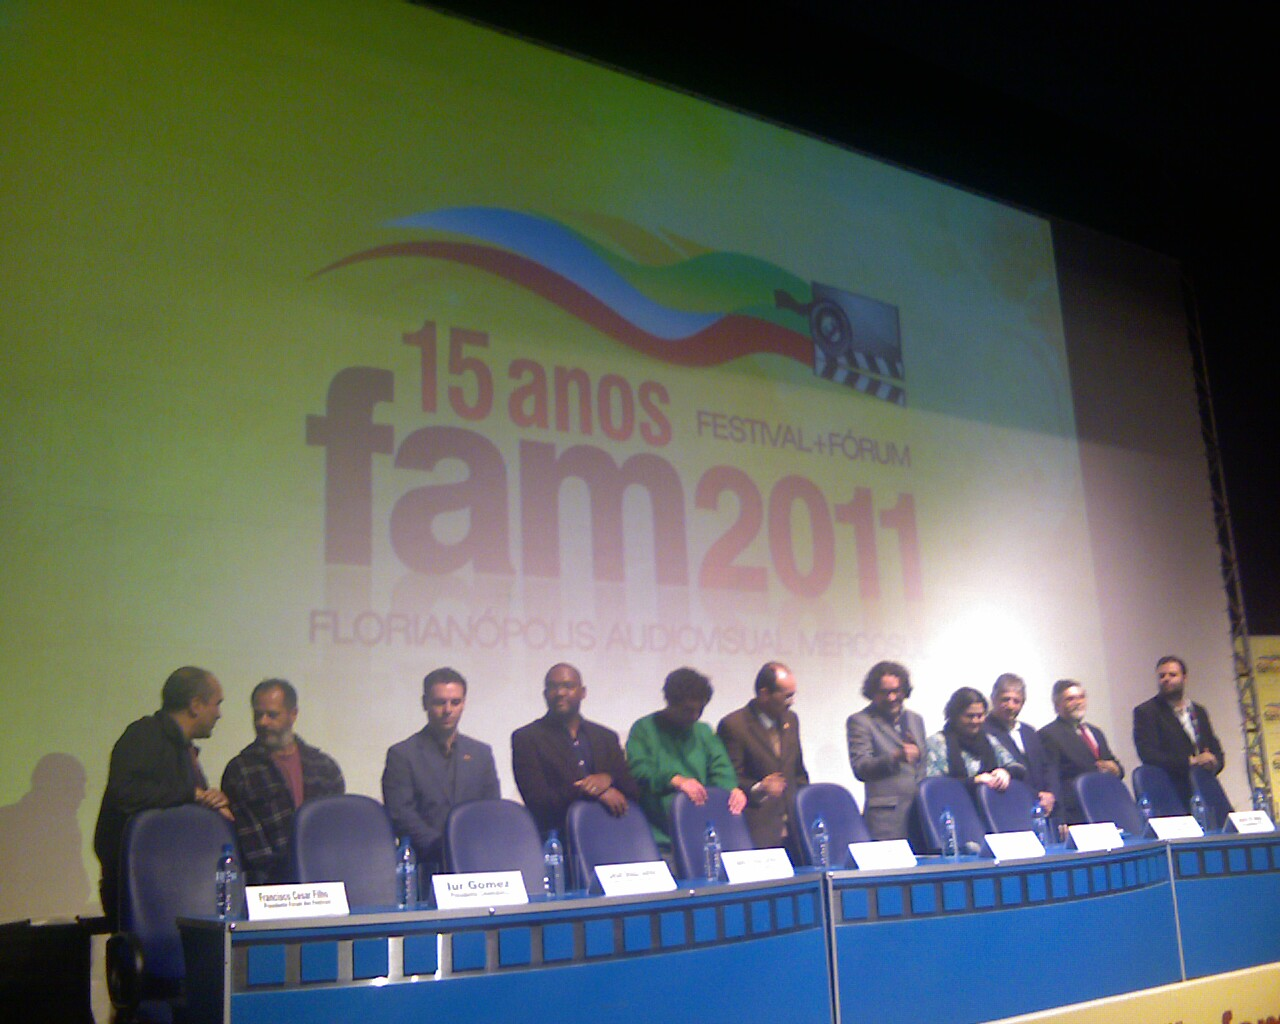 Mesa de abertura do @FAMcinema